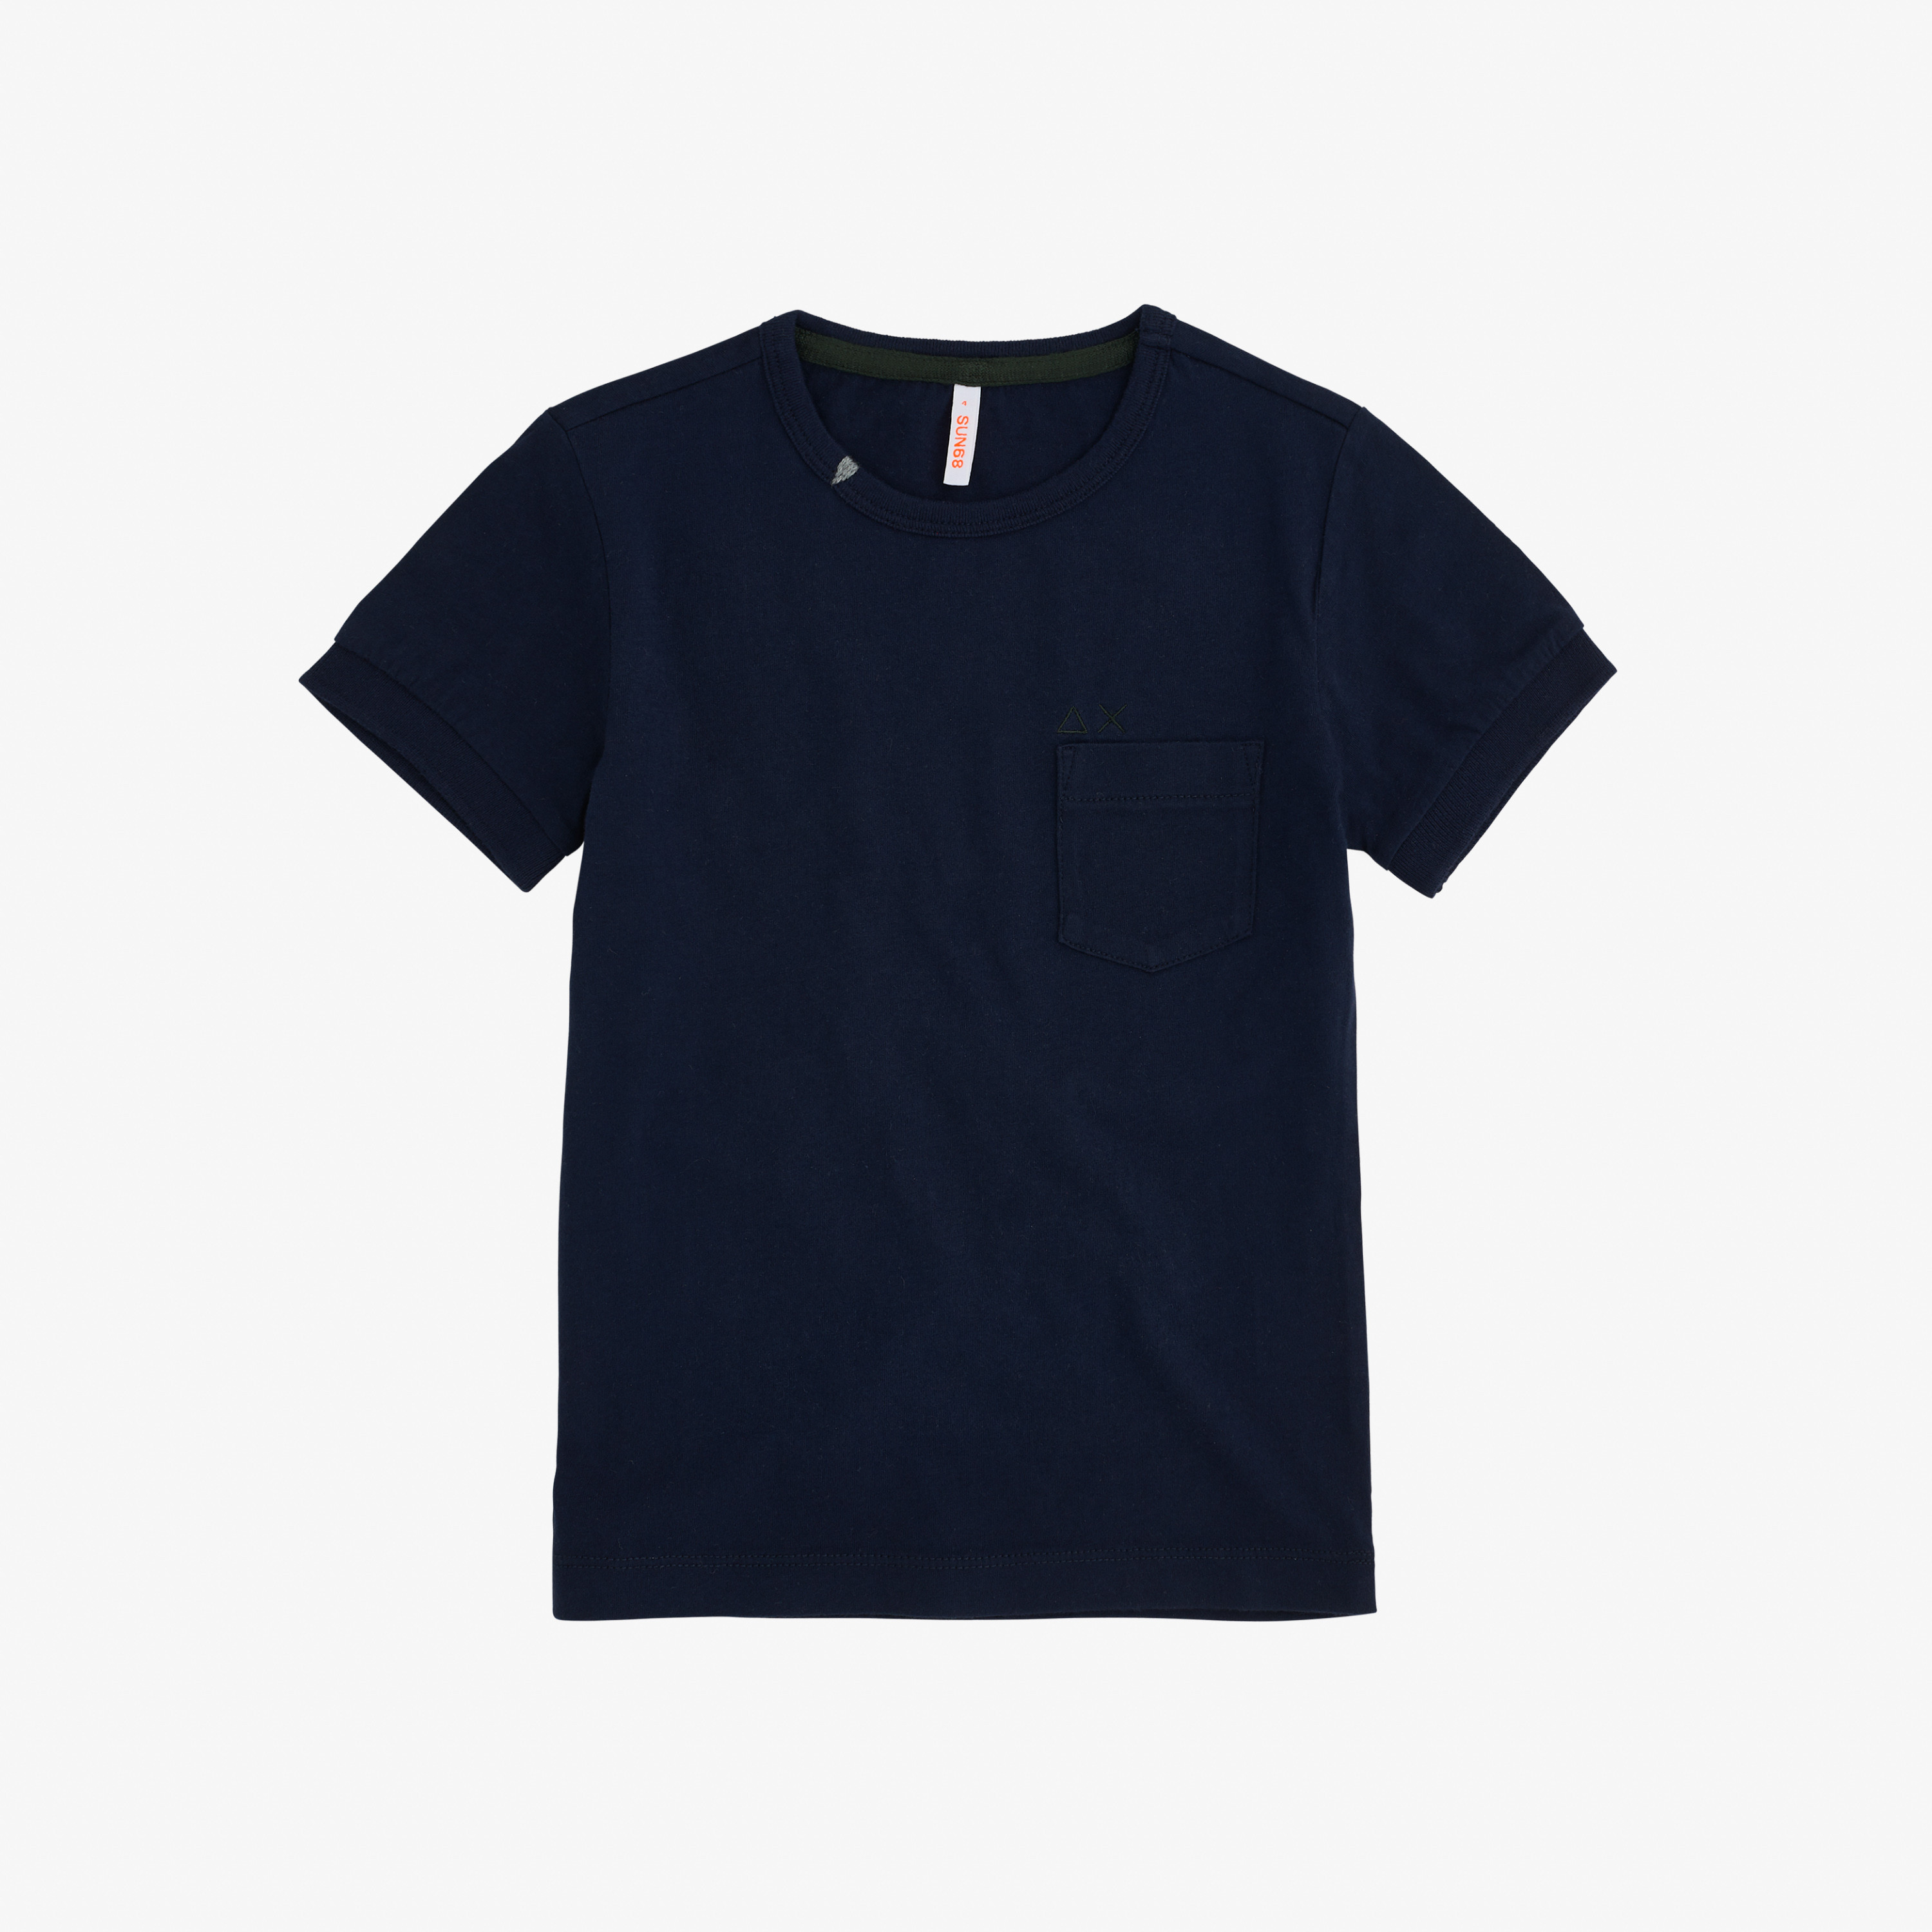 BOY'S T-SHIRT POCKET SOLID S/S NAVY BLUE